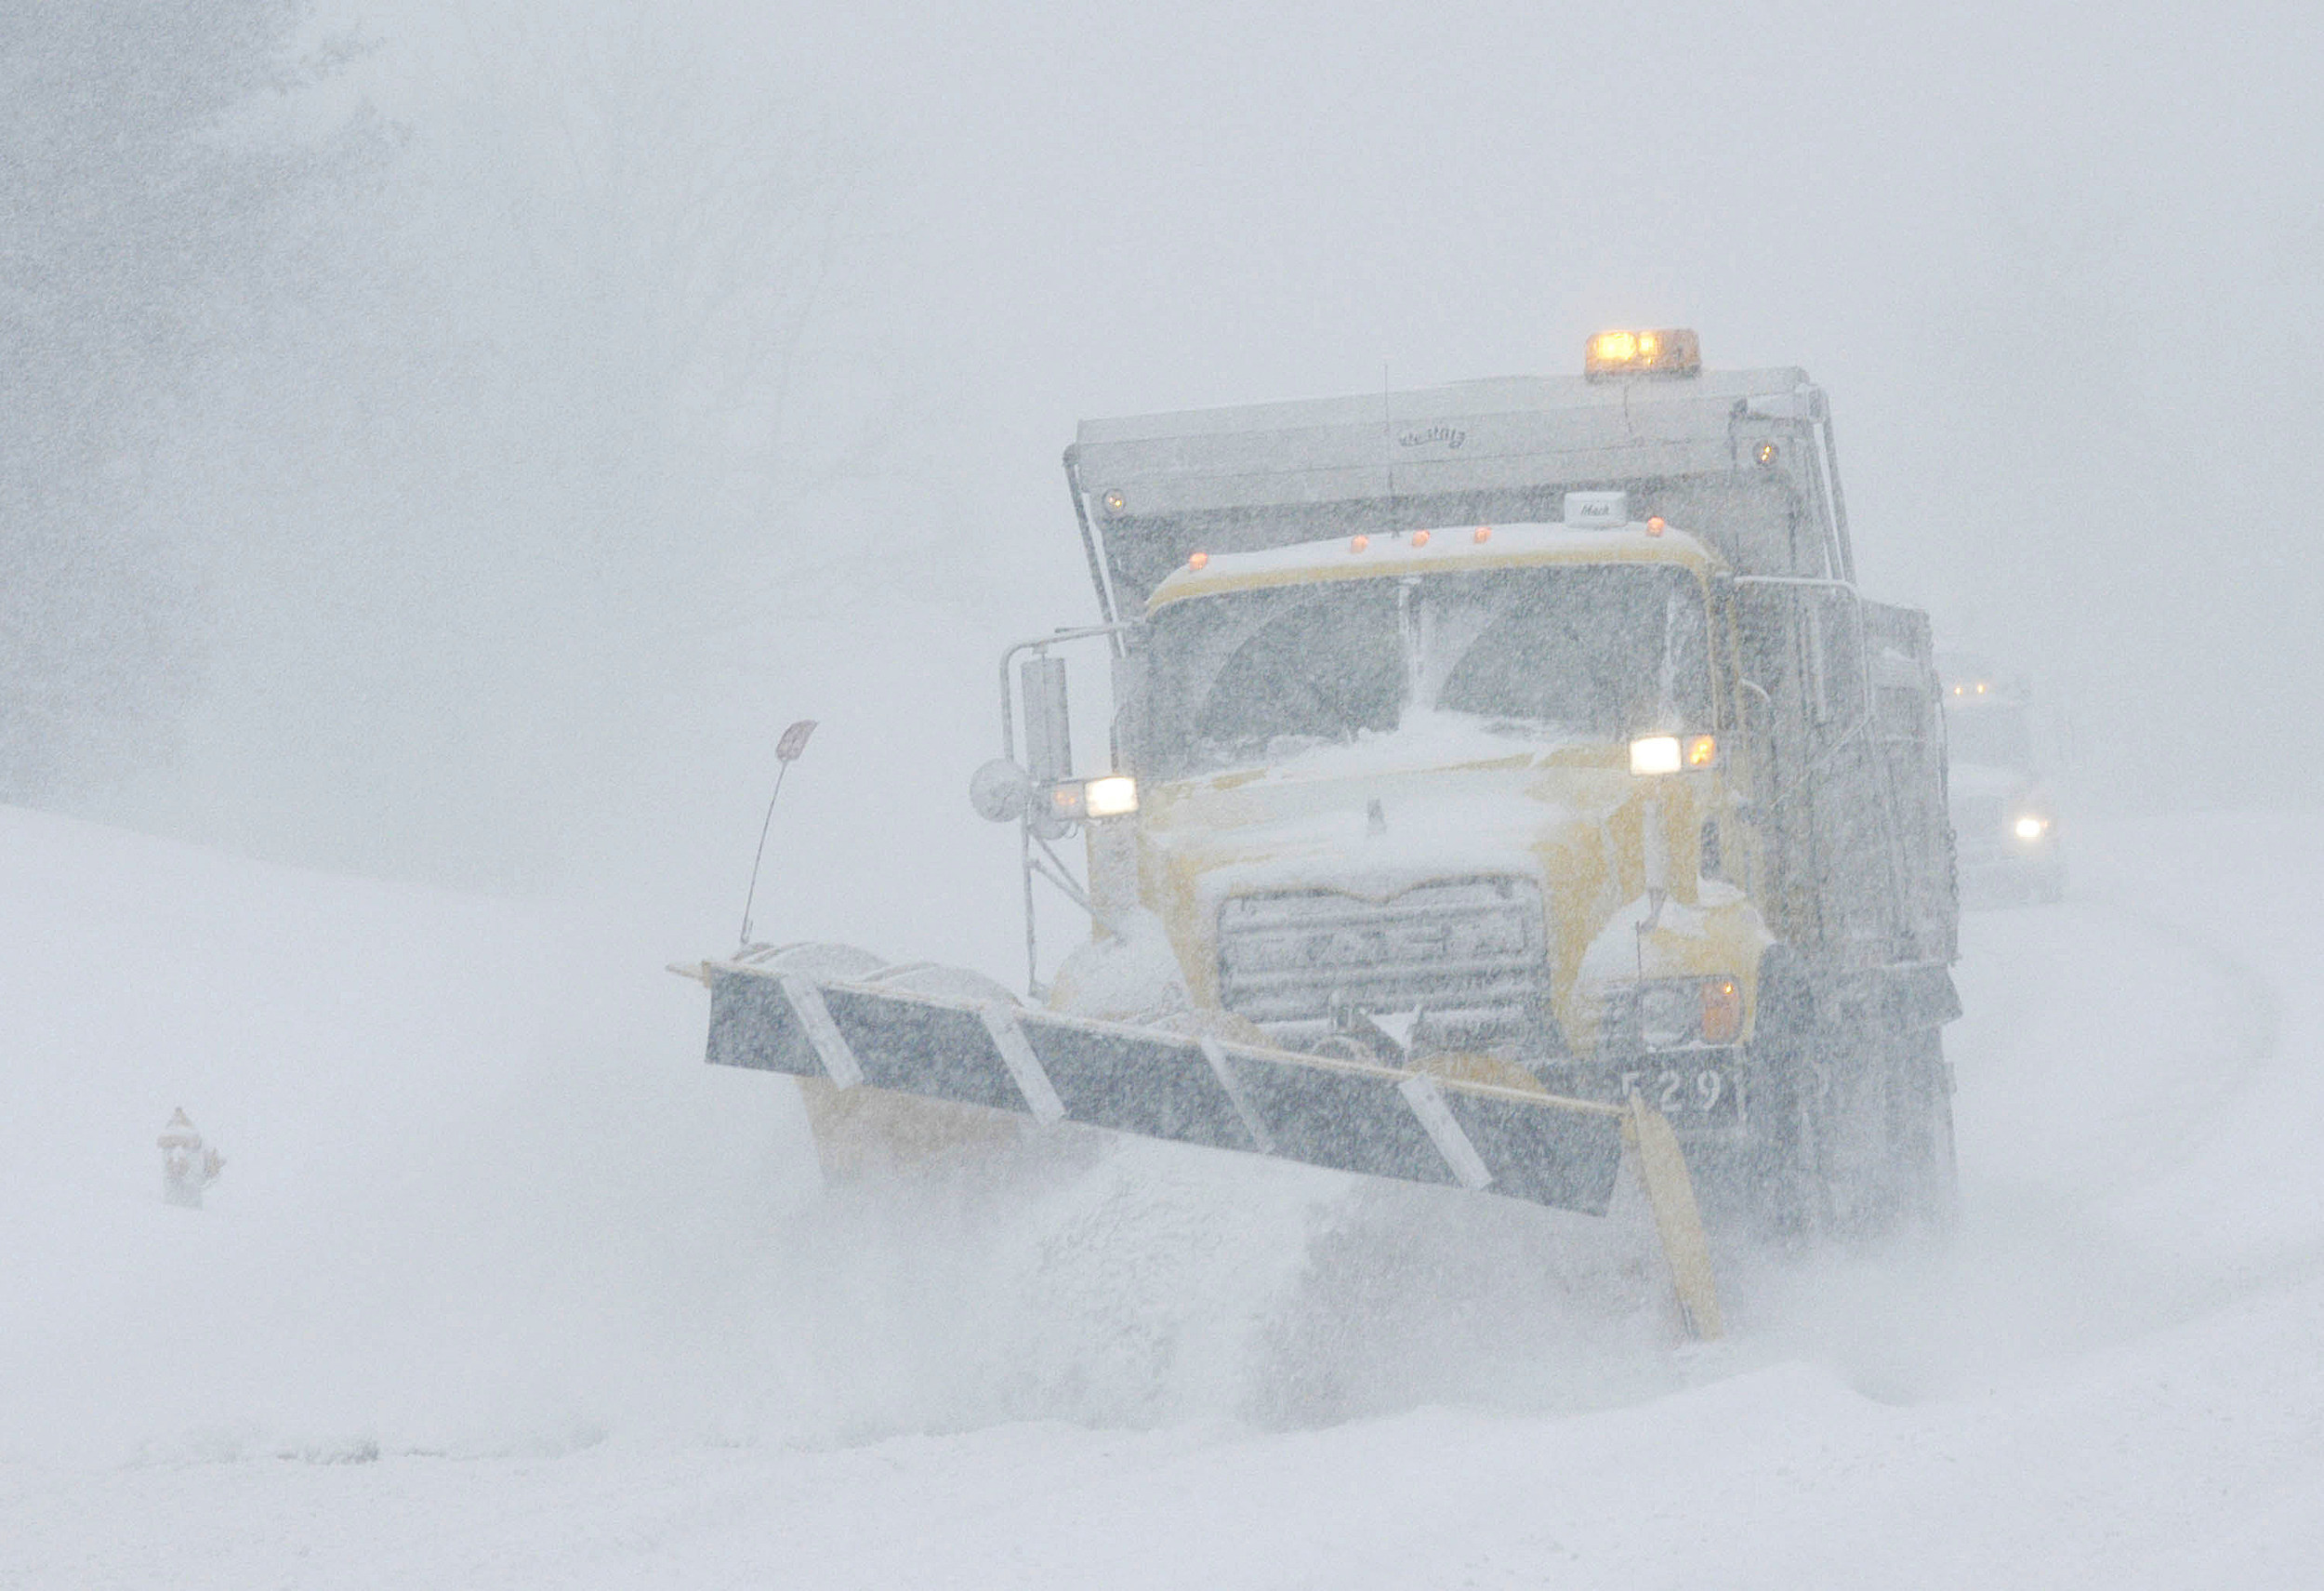 Drivers warned as Met Office issues severe weather warning